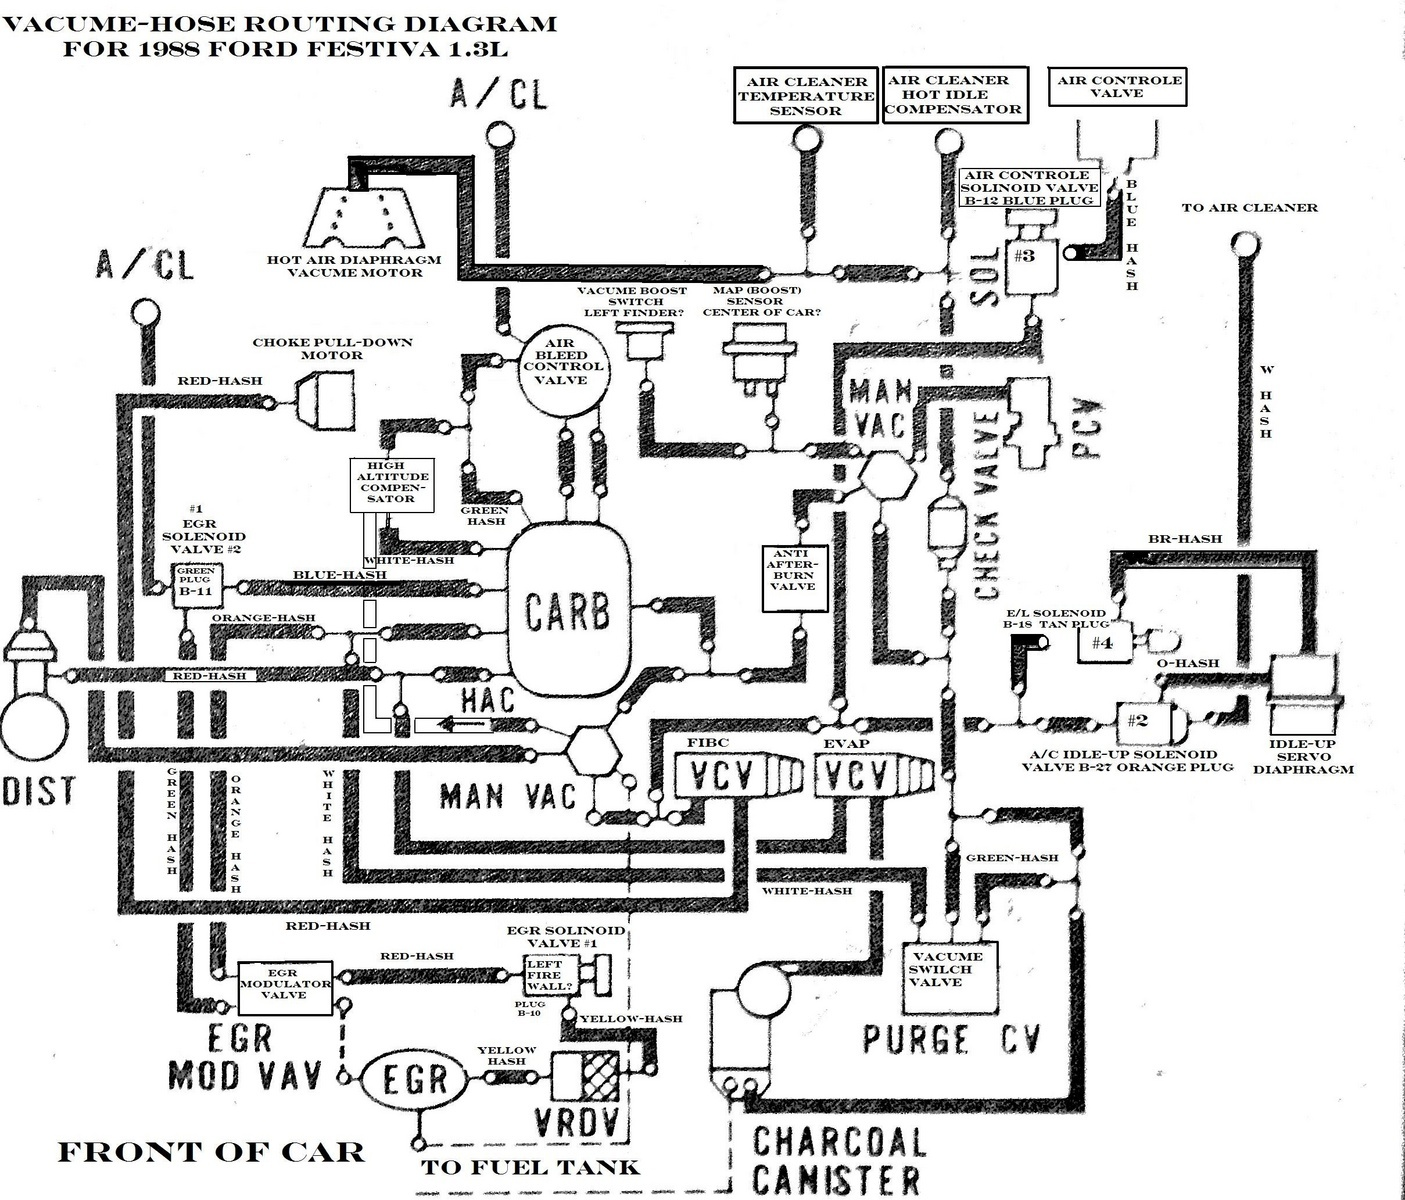 hight resolution of 1993 ford festiva engine diagram wiring diagram operations 1991 ford festiva engine diagram wiring diagram expert